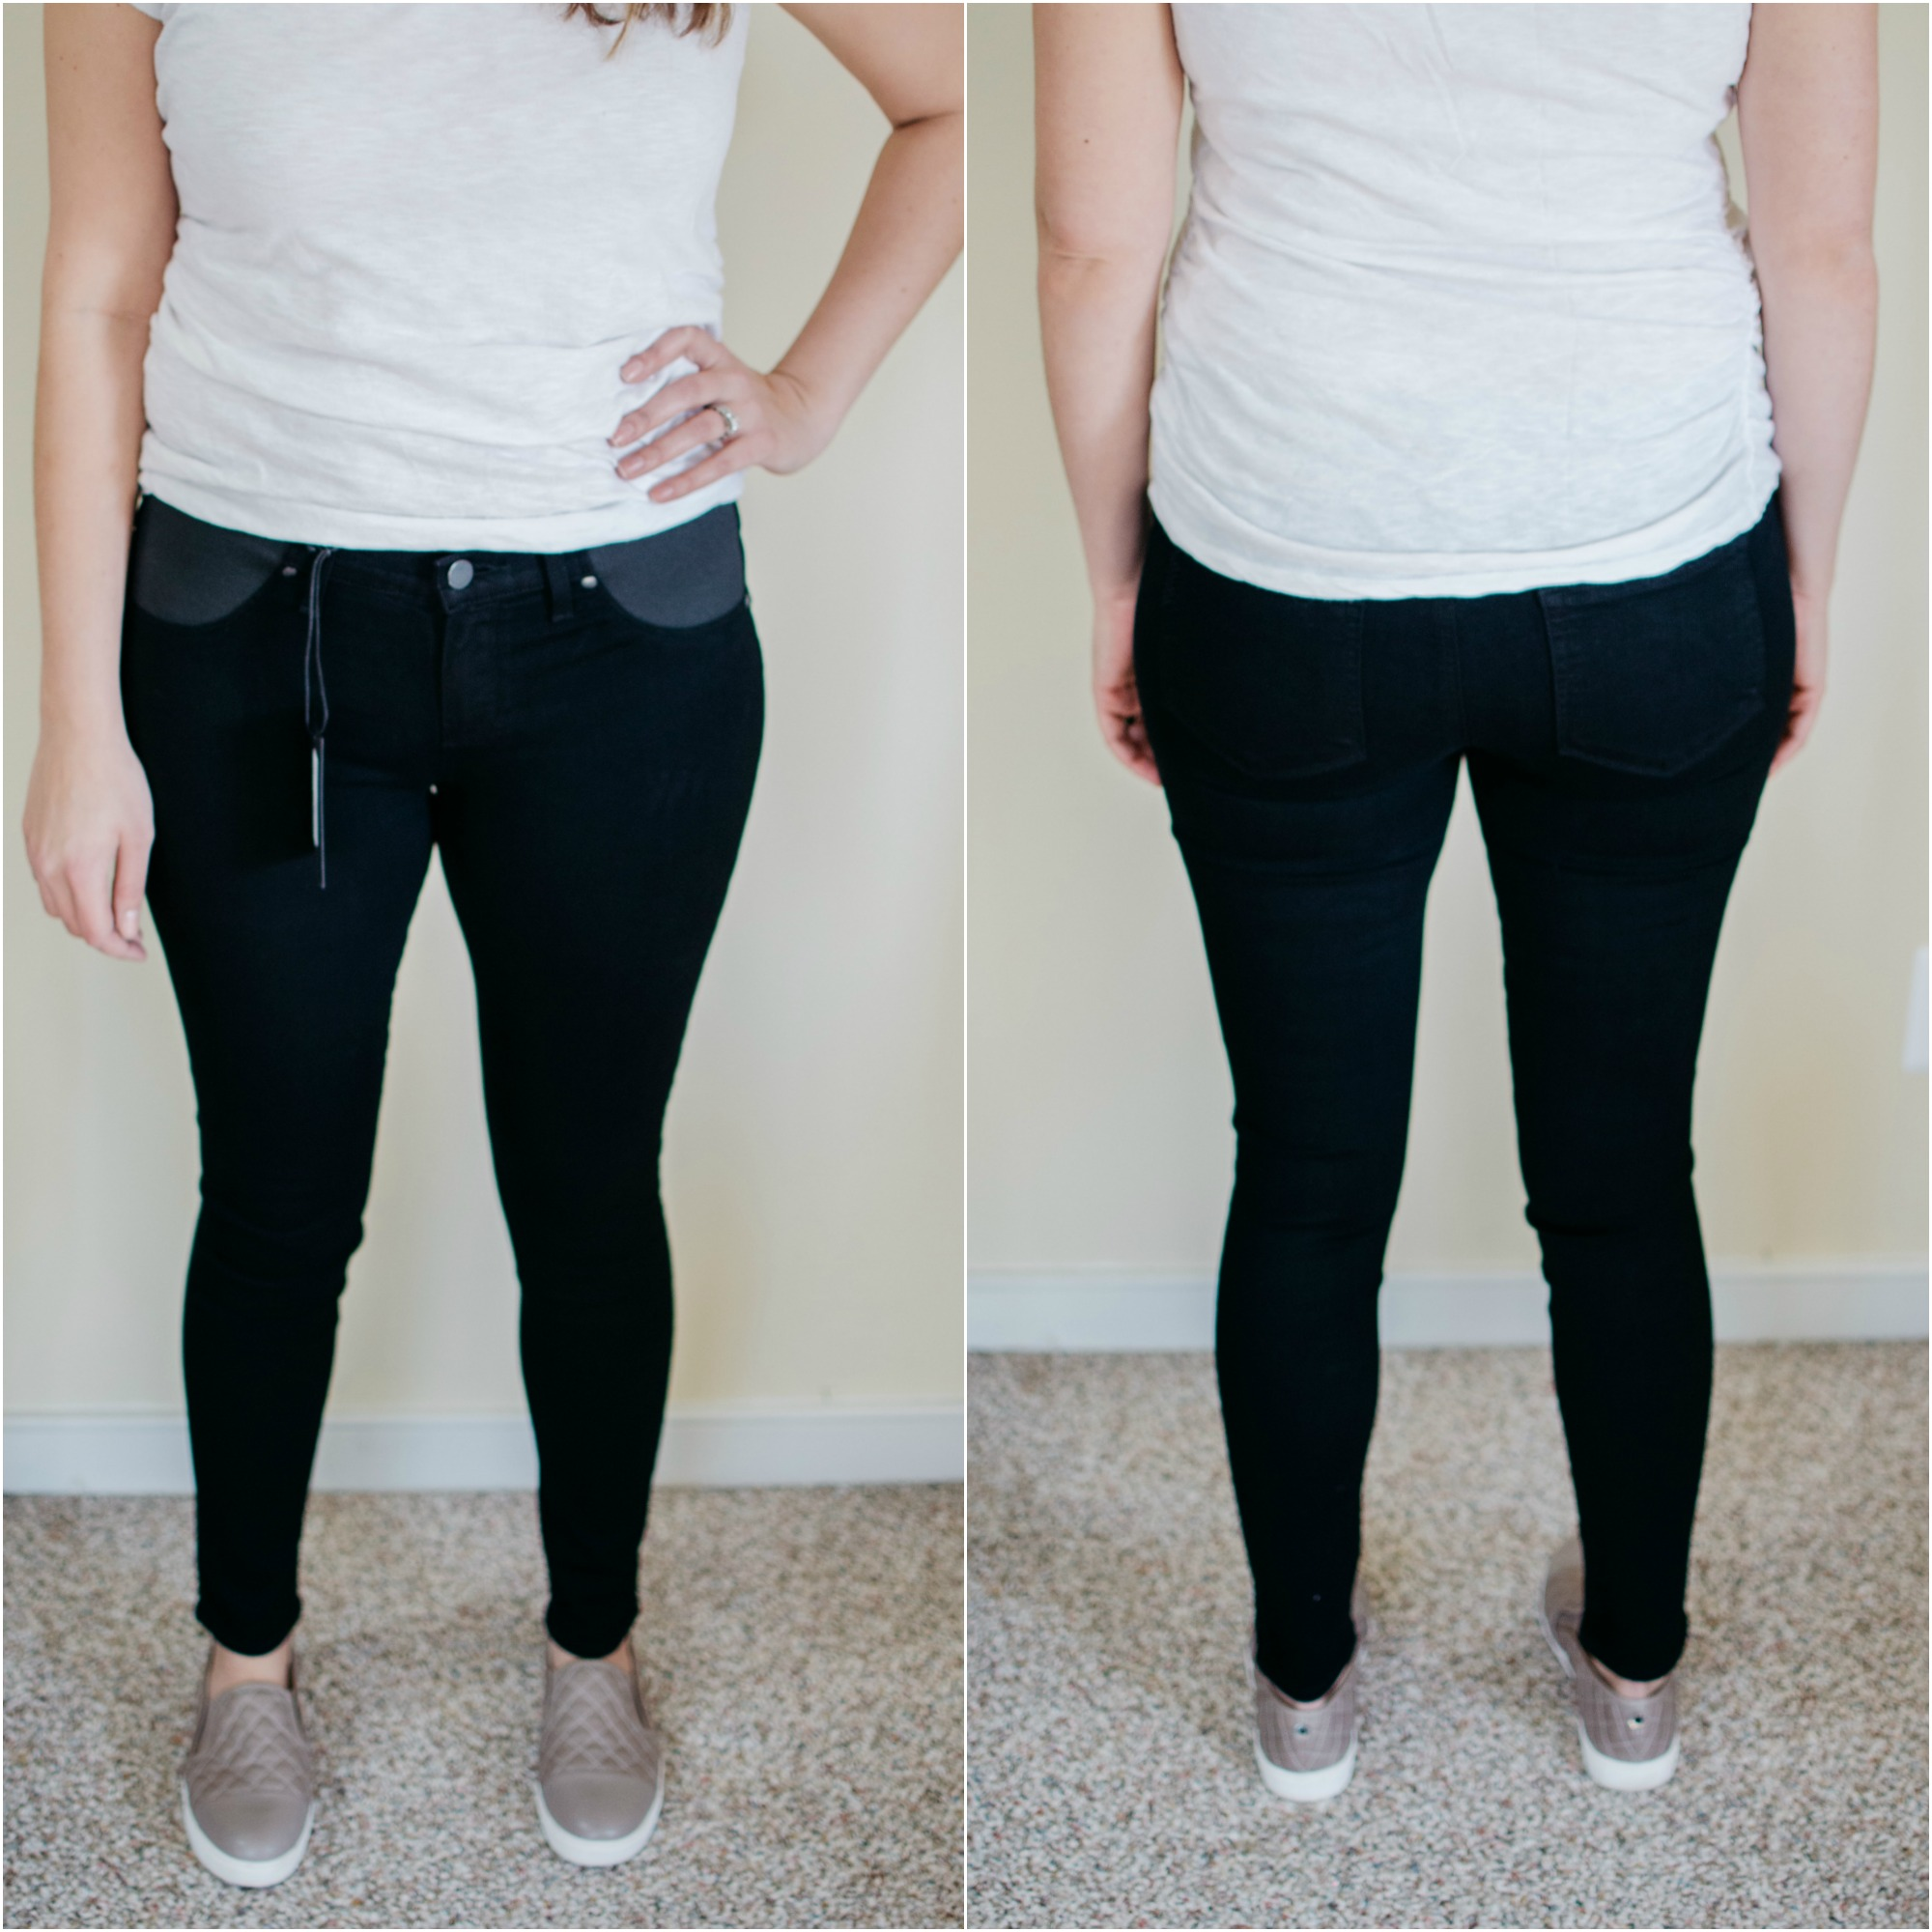 Paige maternity jeans review - Paige verdugo maternity skinny jeans | See reviews of over 15 maternity jeans brands by clicking through to this post! | bylaurenm.com